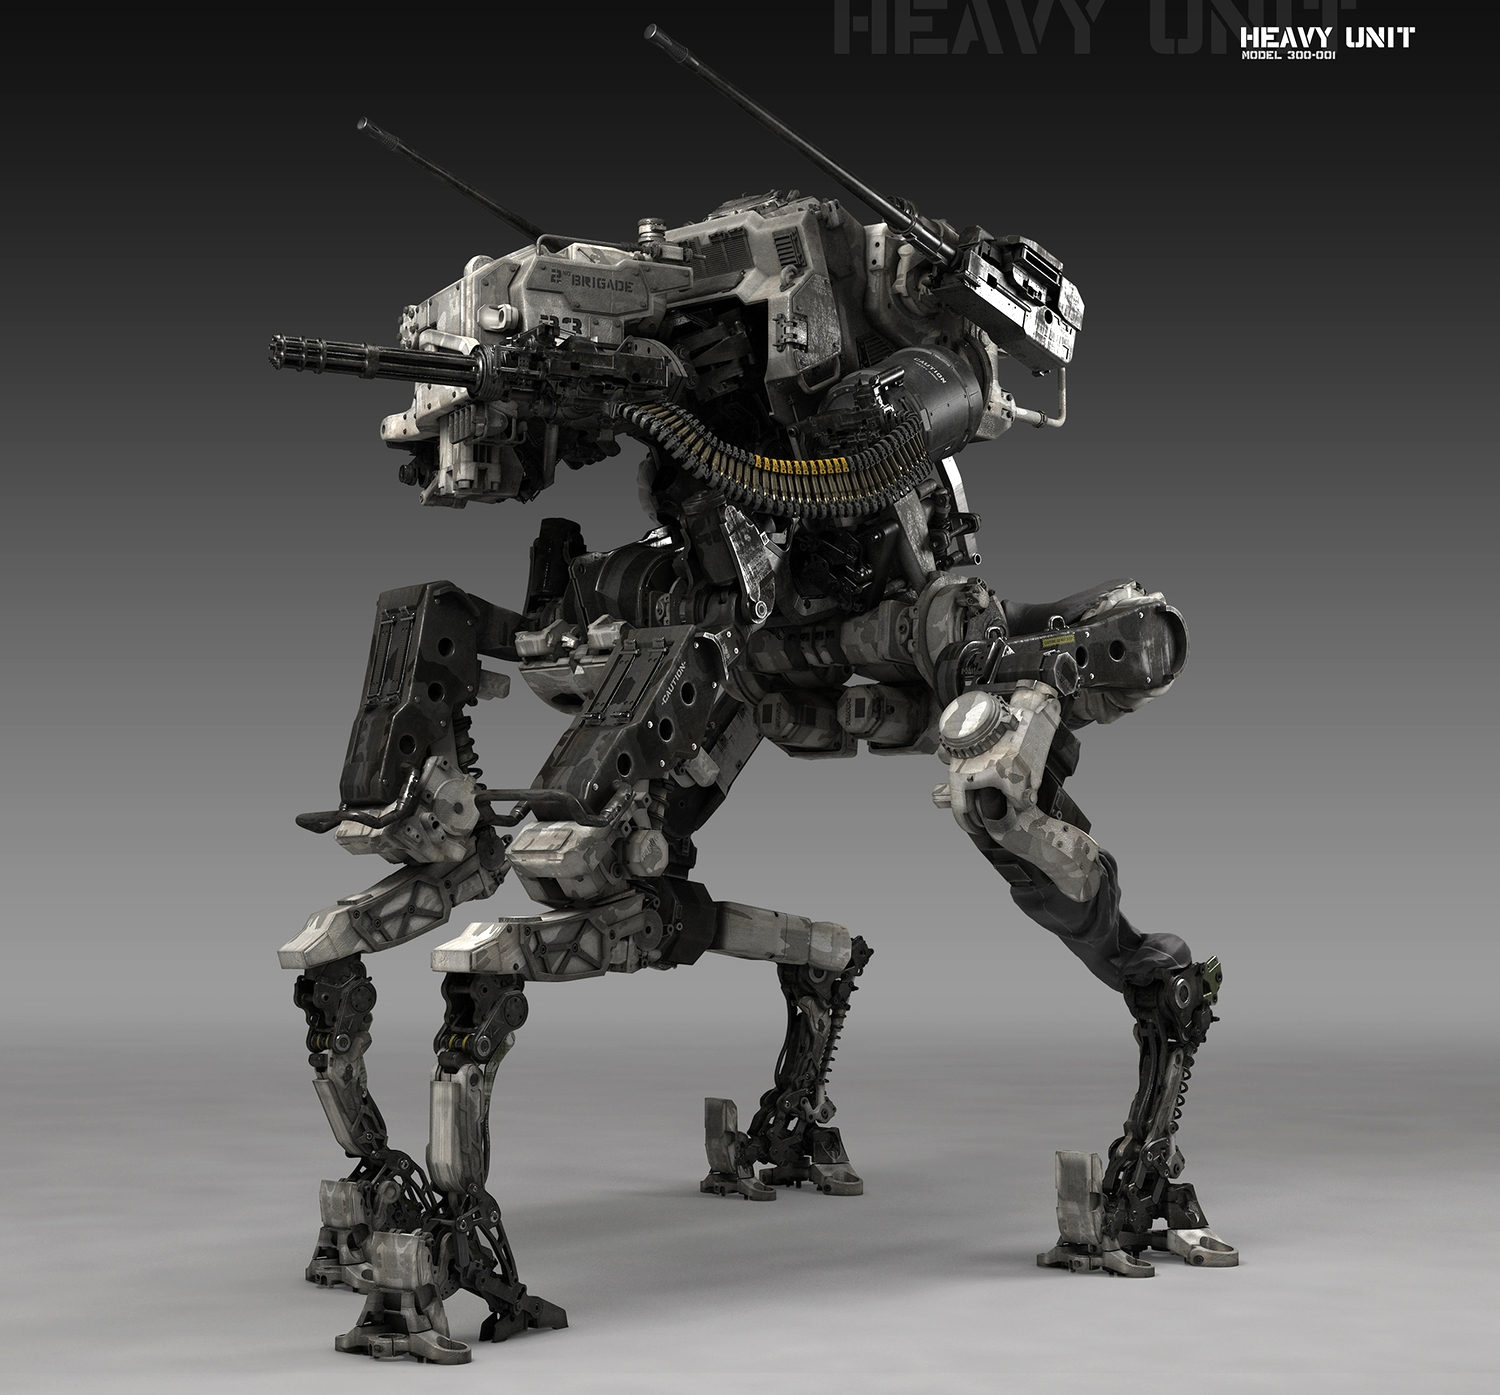 HeavyUnit_Hires_02_Small.jpg